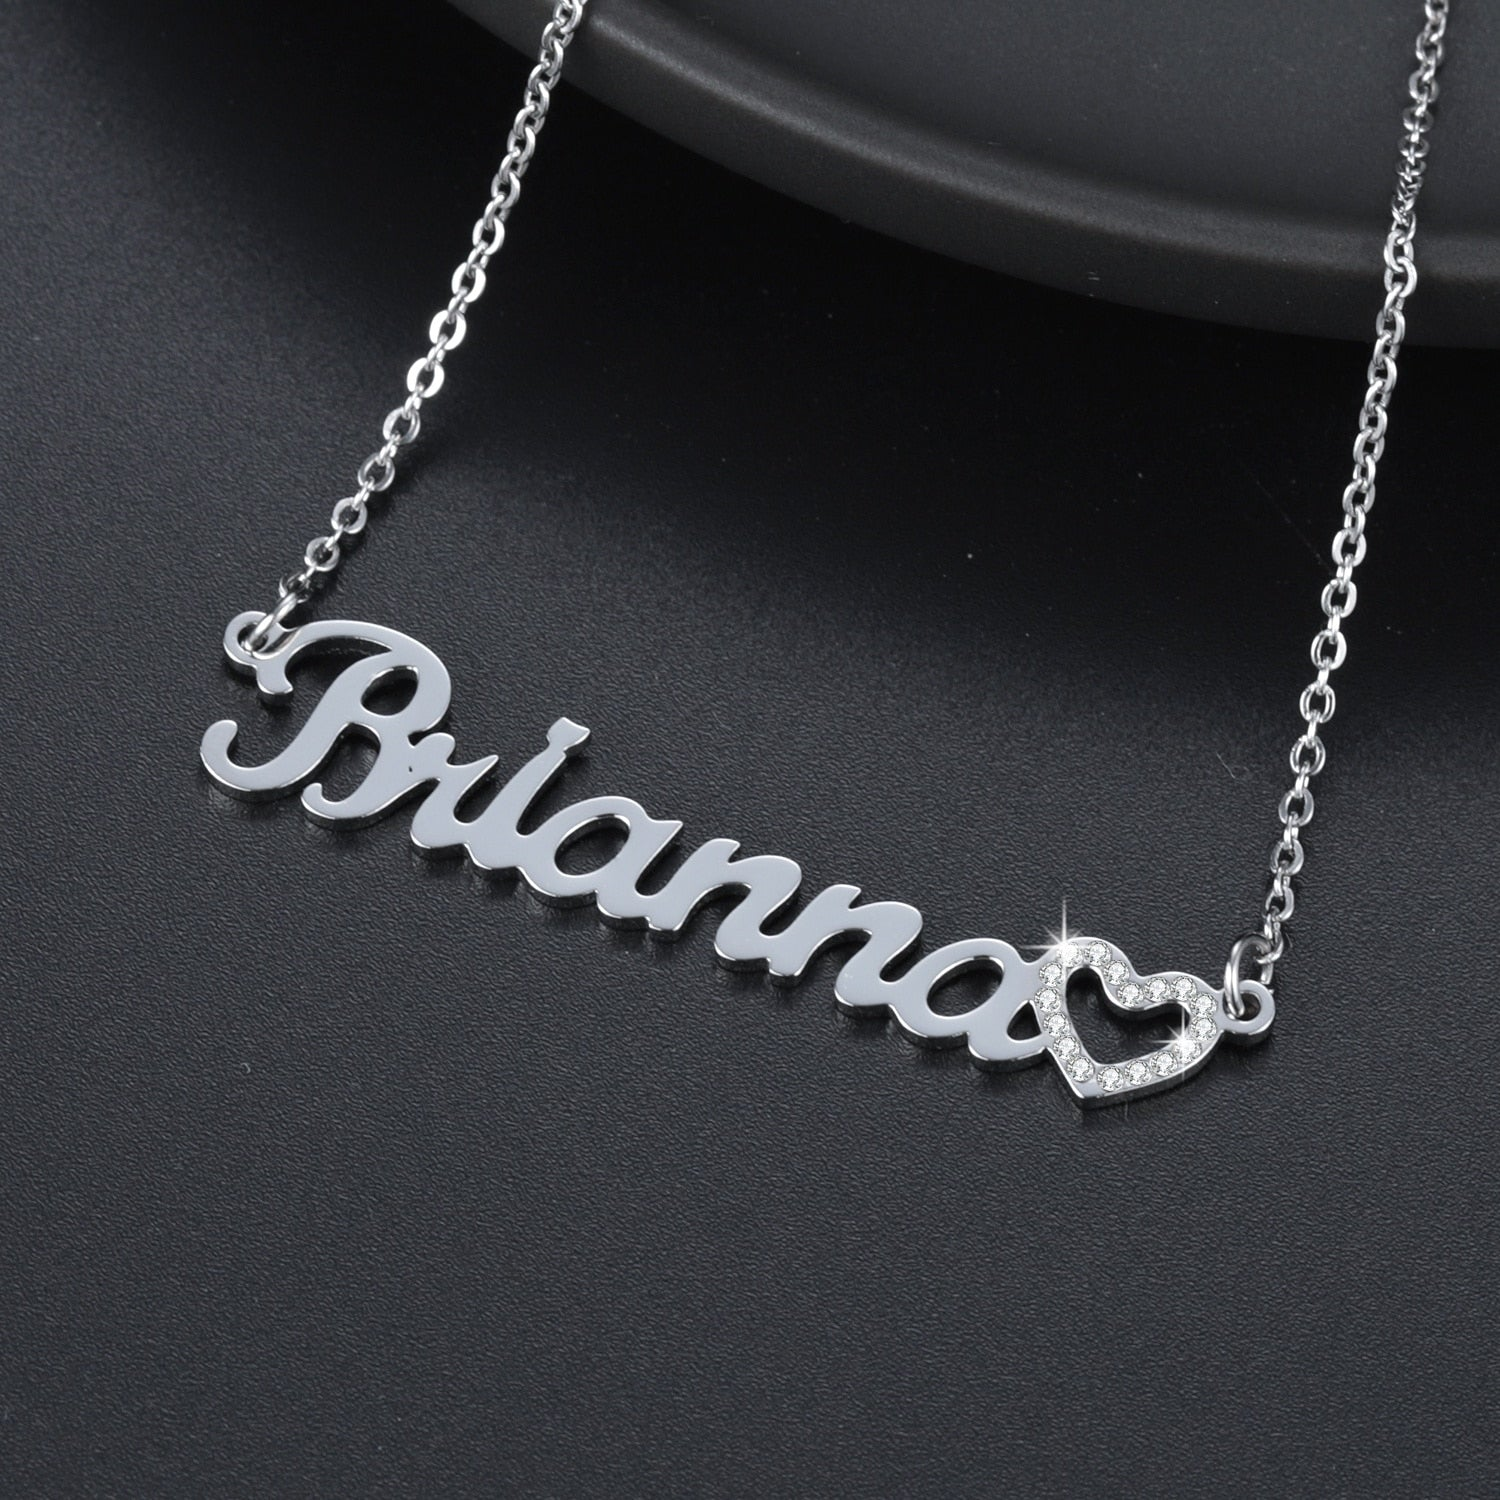 Personalized Iced Heart Necklace